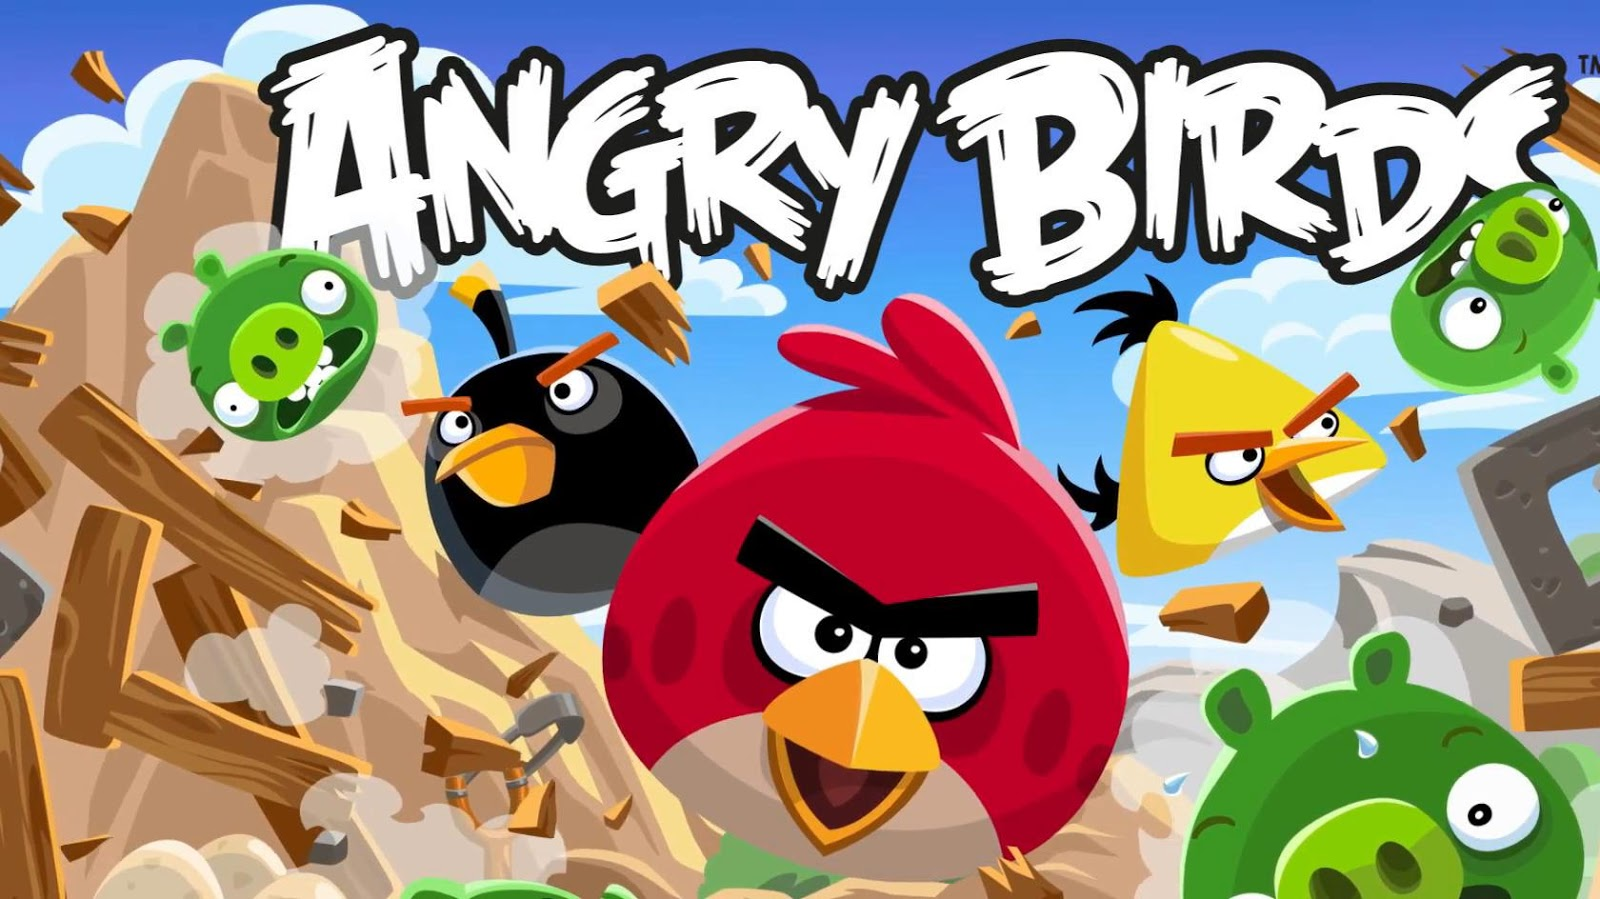 Presenting angry birds all seasons plus bad piggies contents of zip package contains 1 angry birds 2 3 0 2 angry birds rio 1 4 4